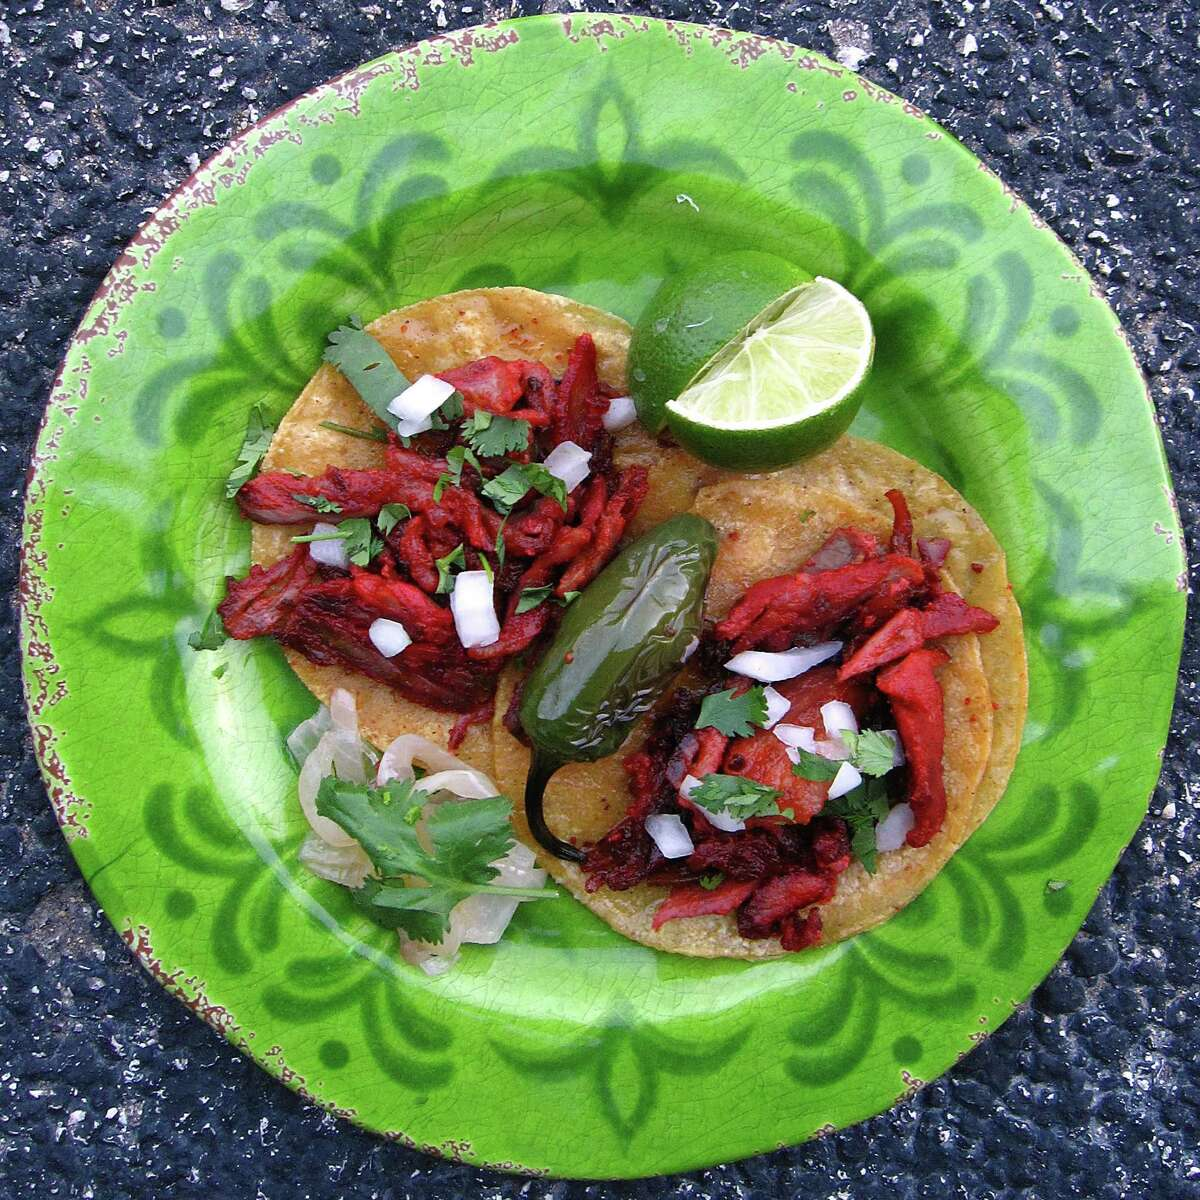 Taco of the Week: Al pastor mini-tacos on doubled-up corn tortillas from Tacos Beto's.